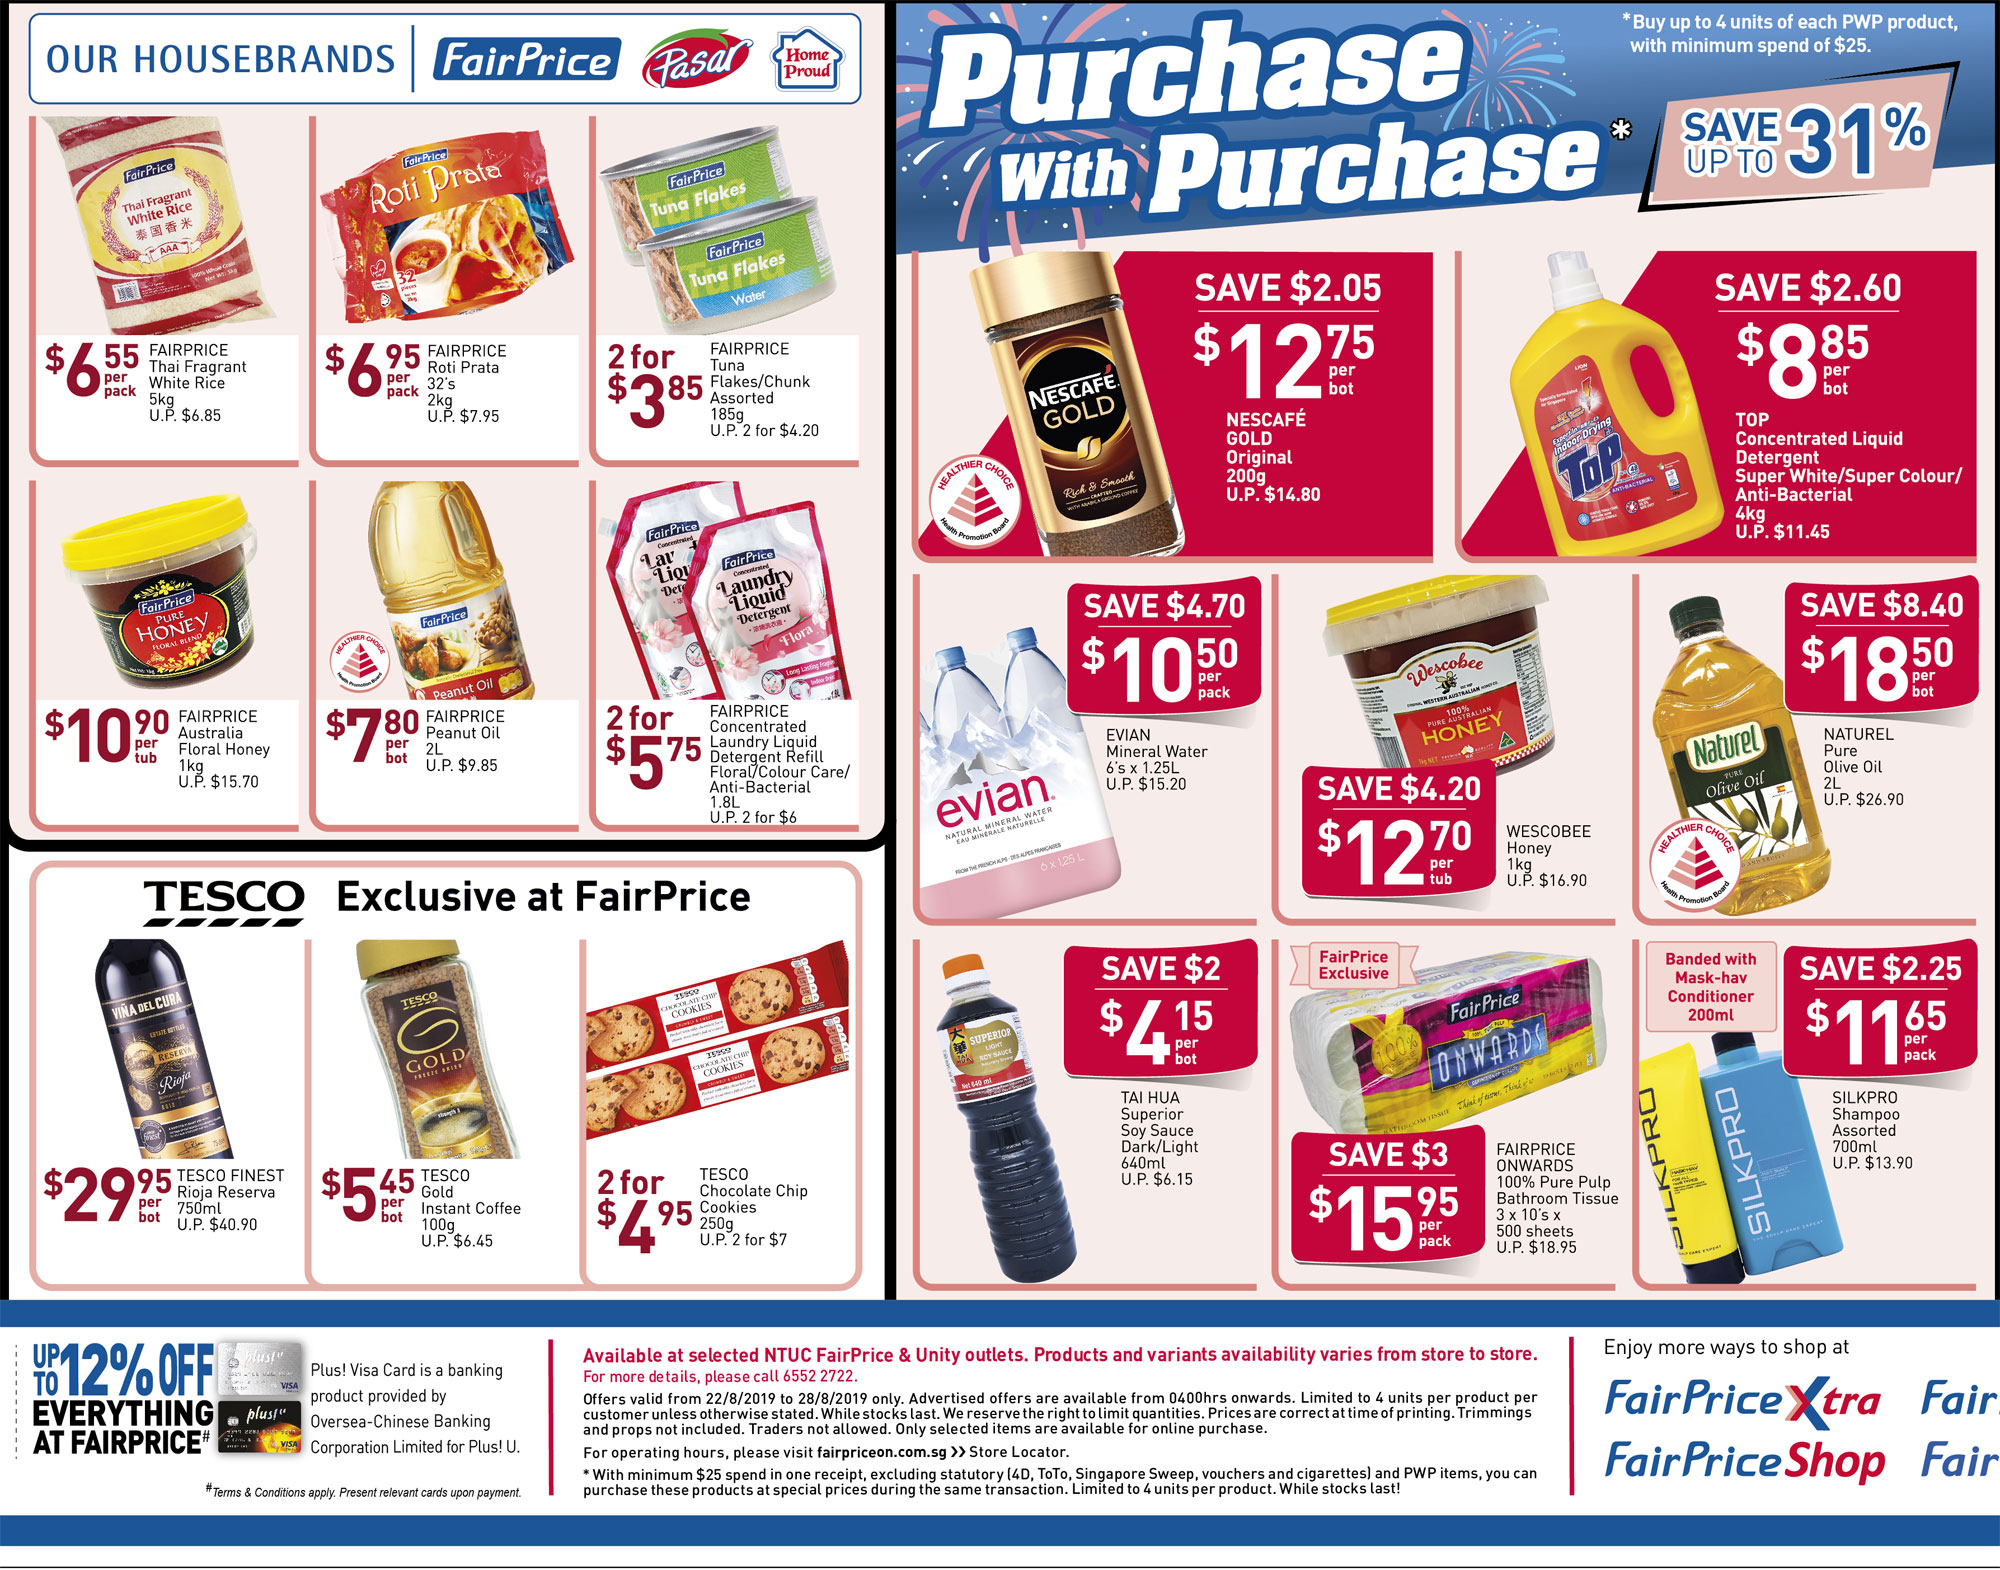 NTUC FairPrice Singapore Your Weekly Saver Promotion 22-28 Aug 2019 | Why Not Deals 1 & Promotions